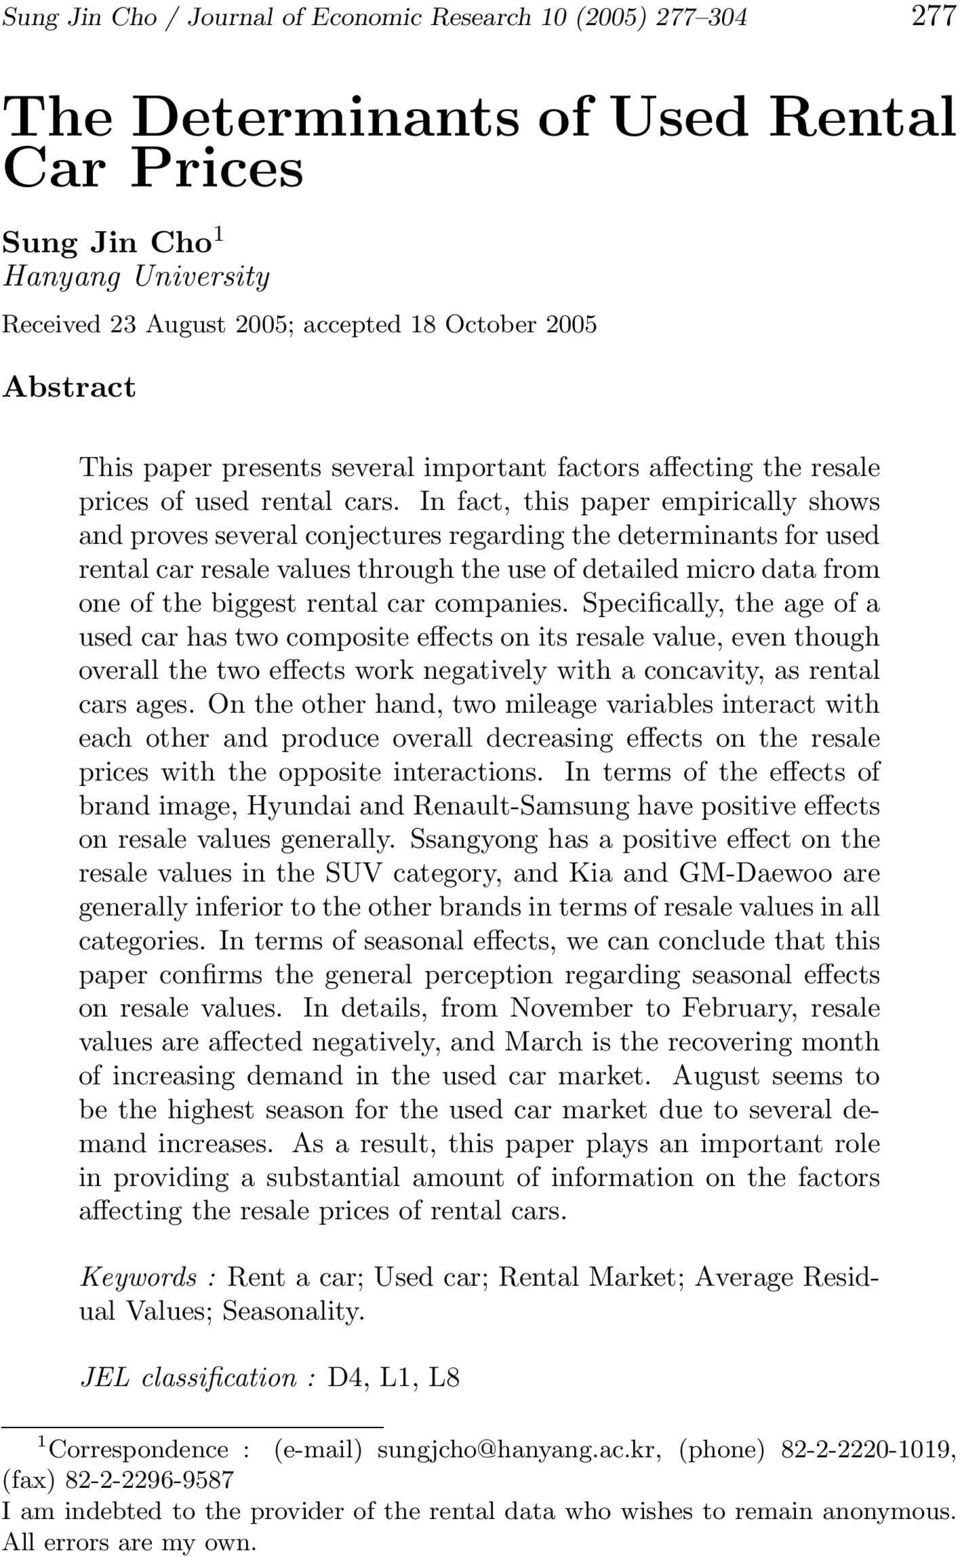 In fact, this paper empirically shows and proves several conjectures regarding the determinants for used rental car resale values through the use of detailed micro data from one of the biggest rental